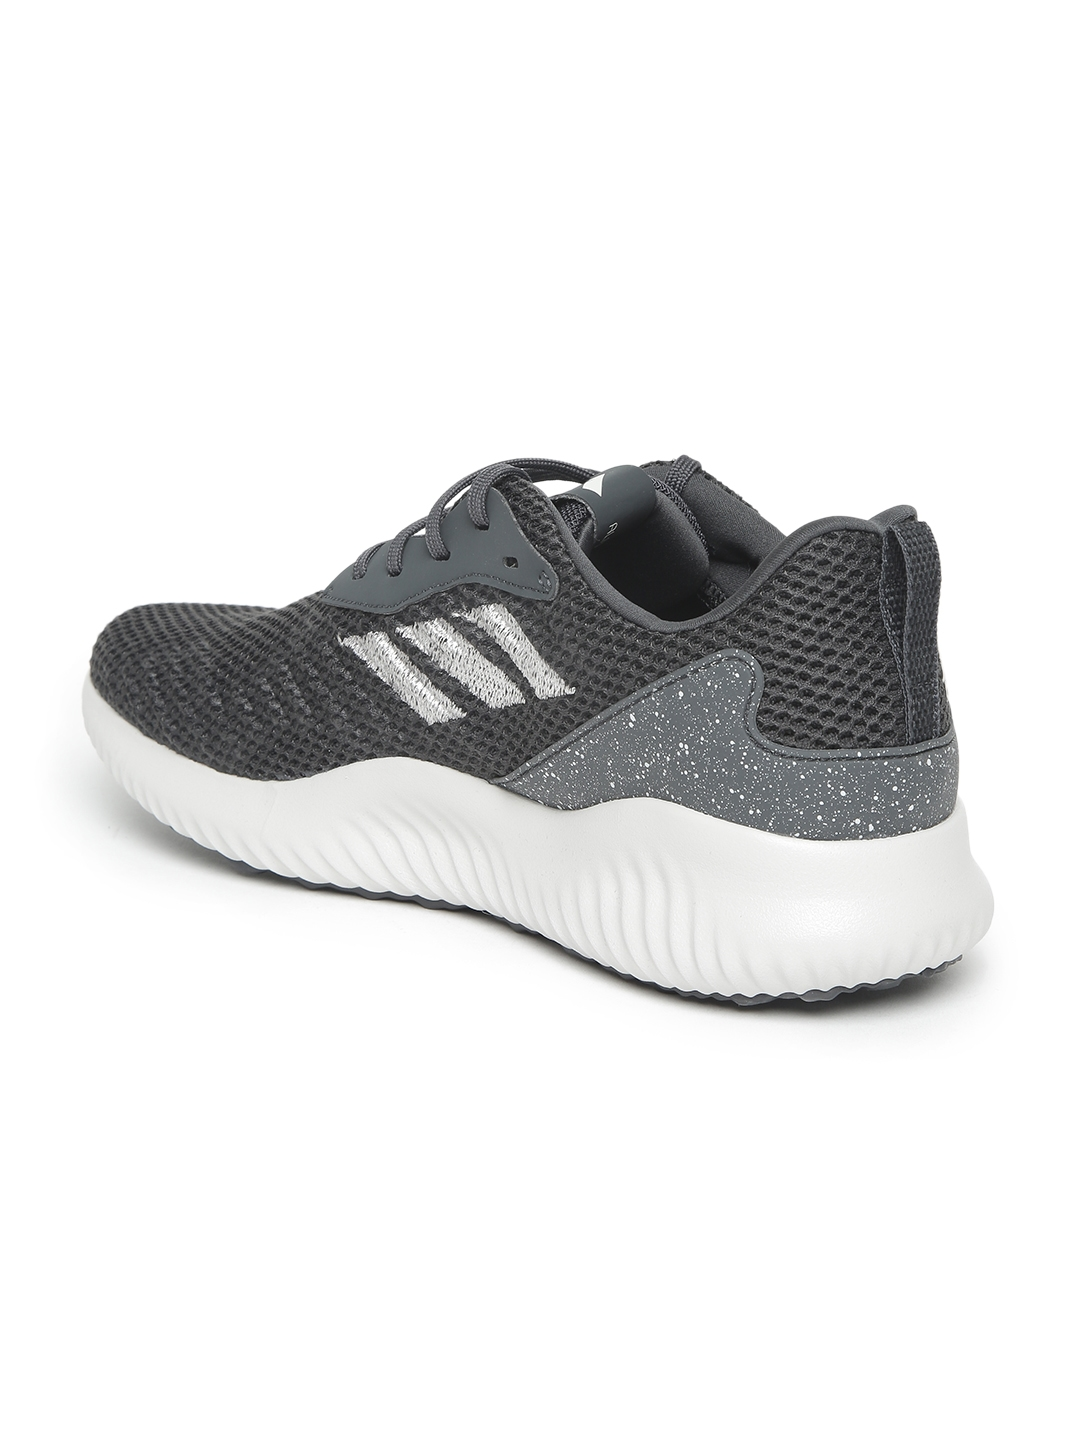 991c290a Buy ADIDAS Men Grey Running Shoes - Sports Shoes for Men 3095262 ...